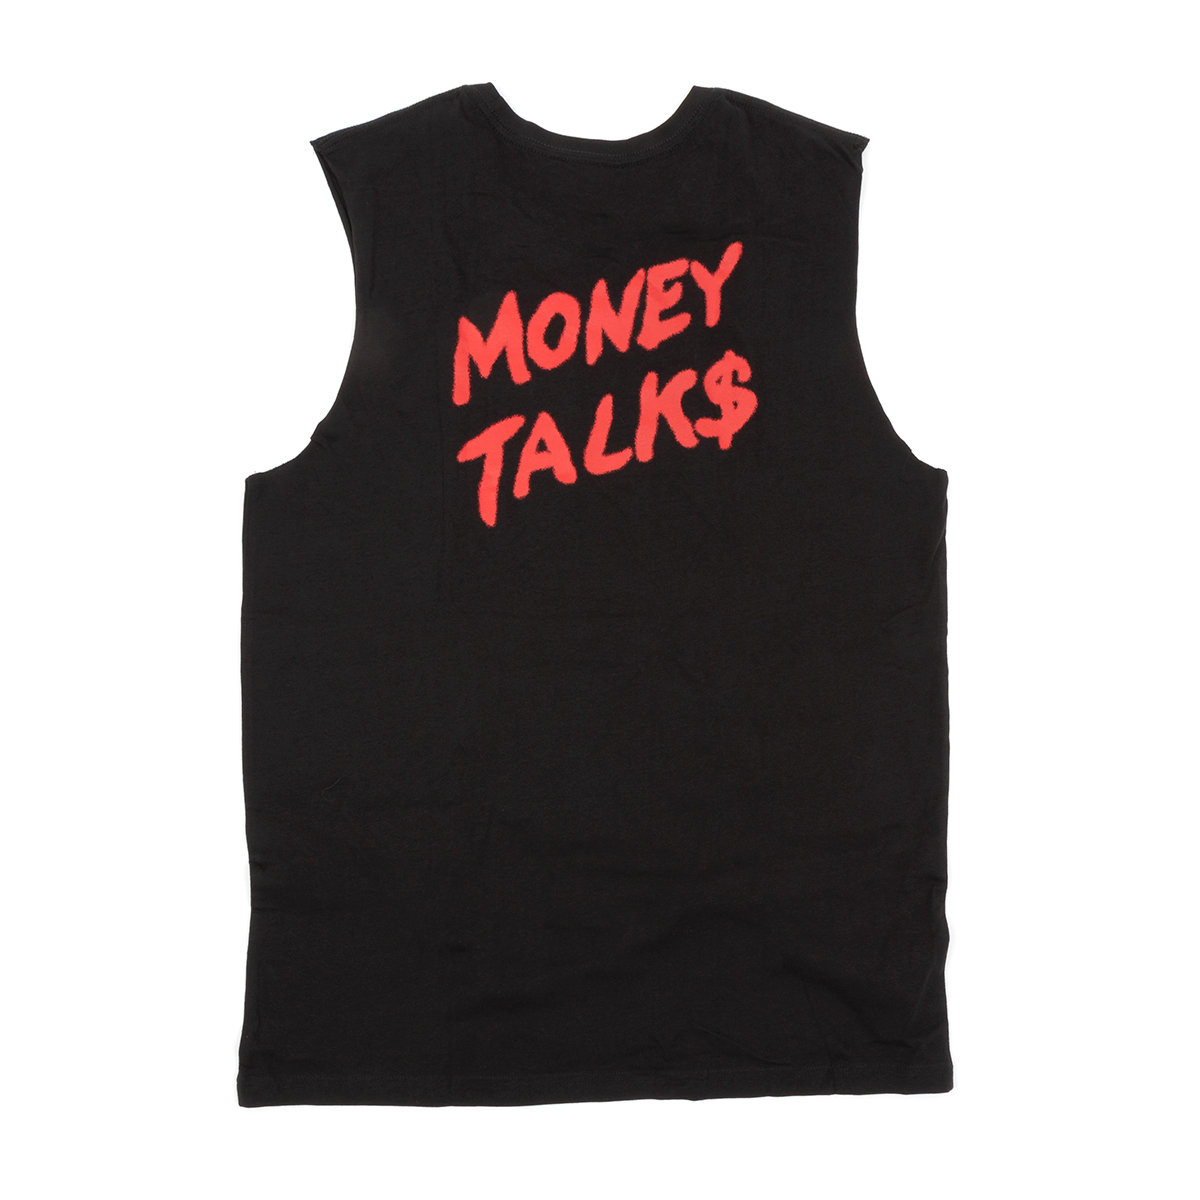 AC/DC - Money Talk$ Black Sleeveless Tank W/ Red Logo